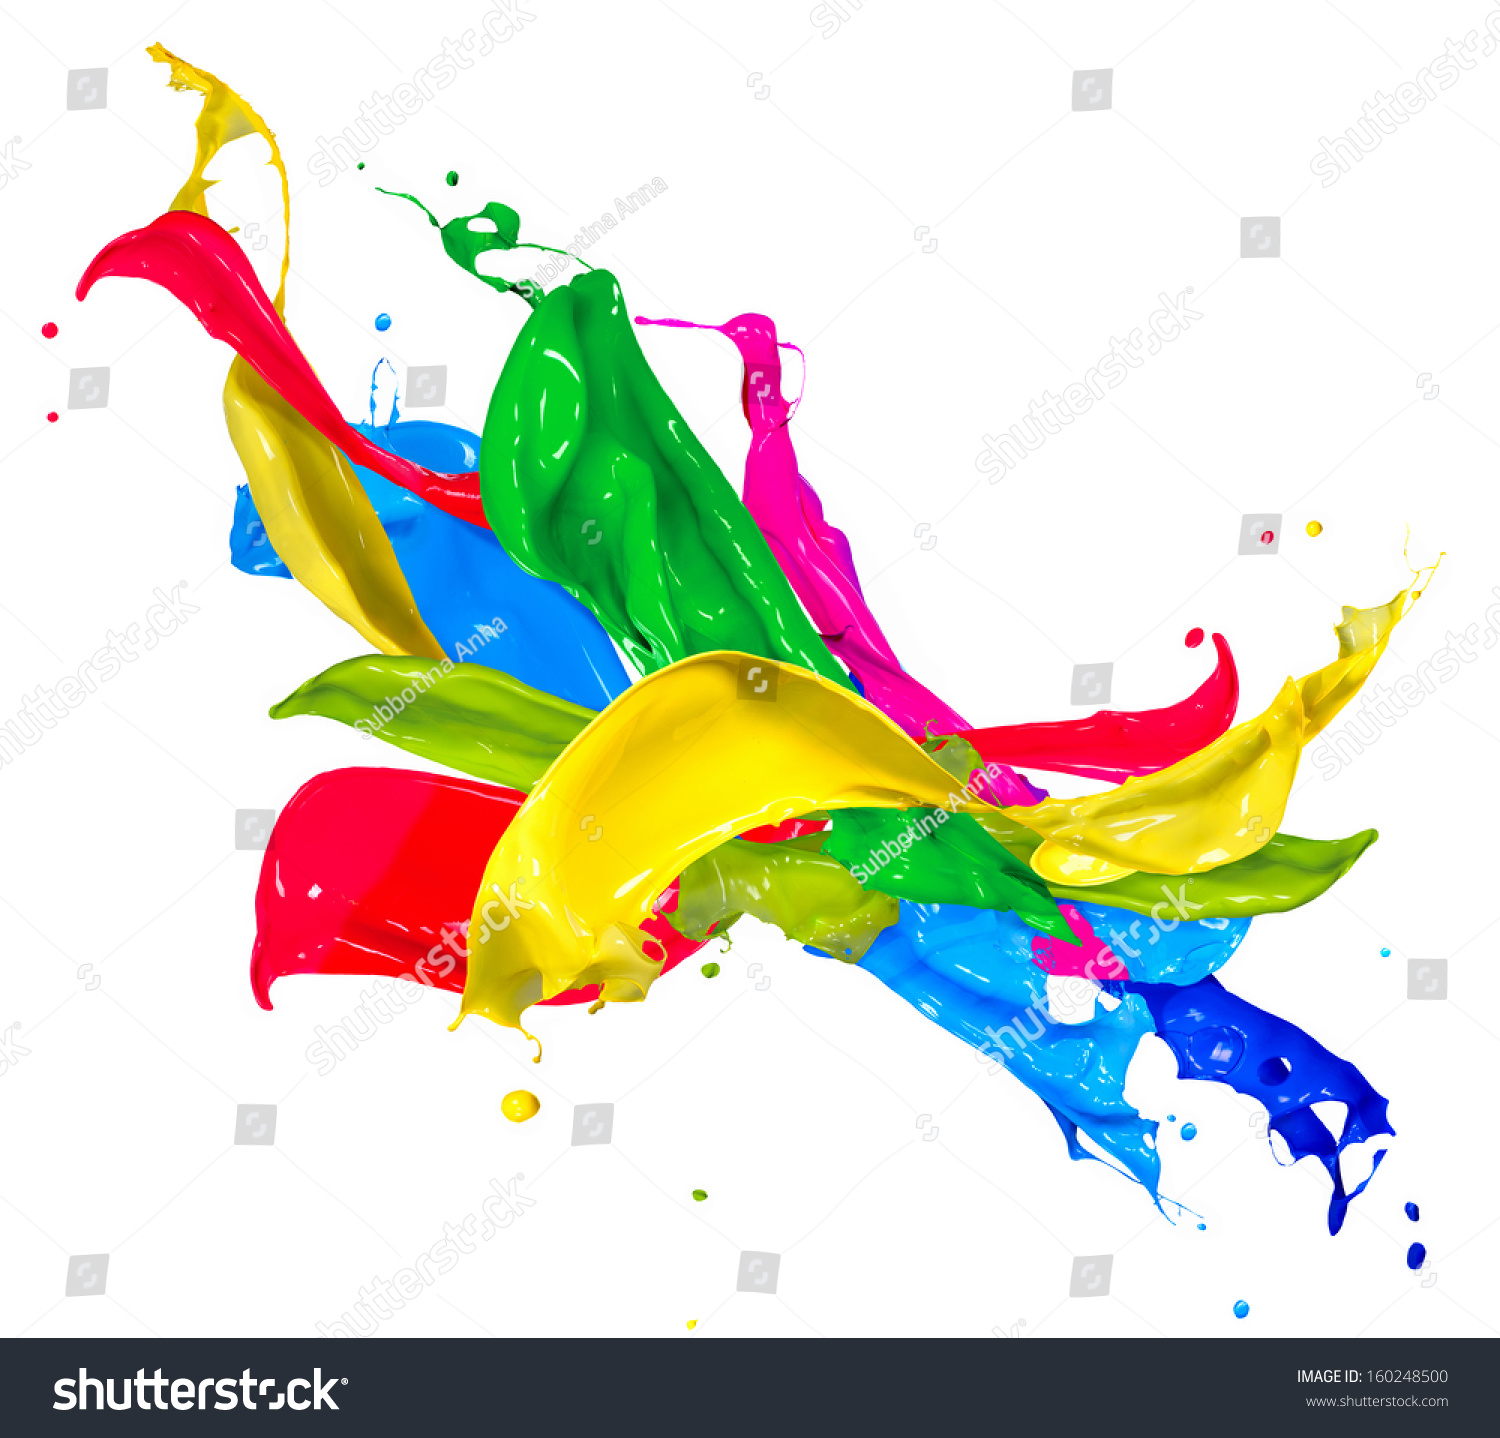 Splash Colorful Room Wall: Colorful Paint Splash Isolated On White Stock Photo